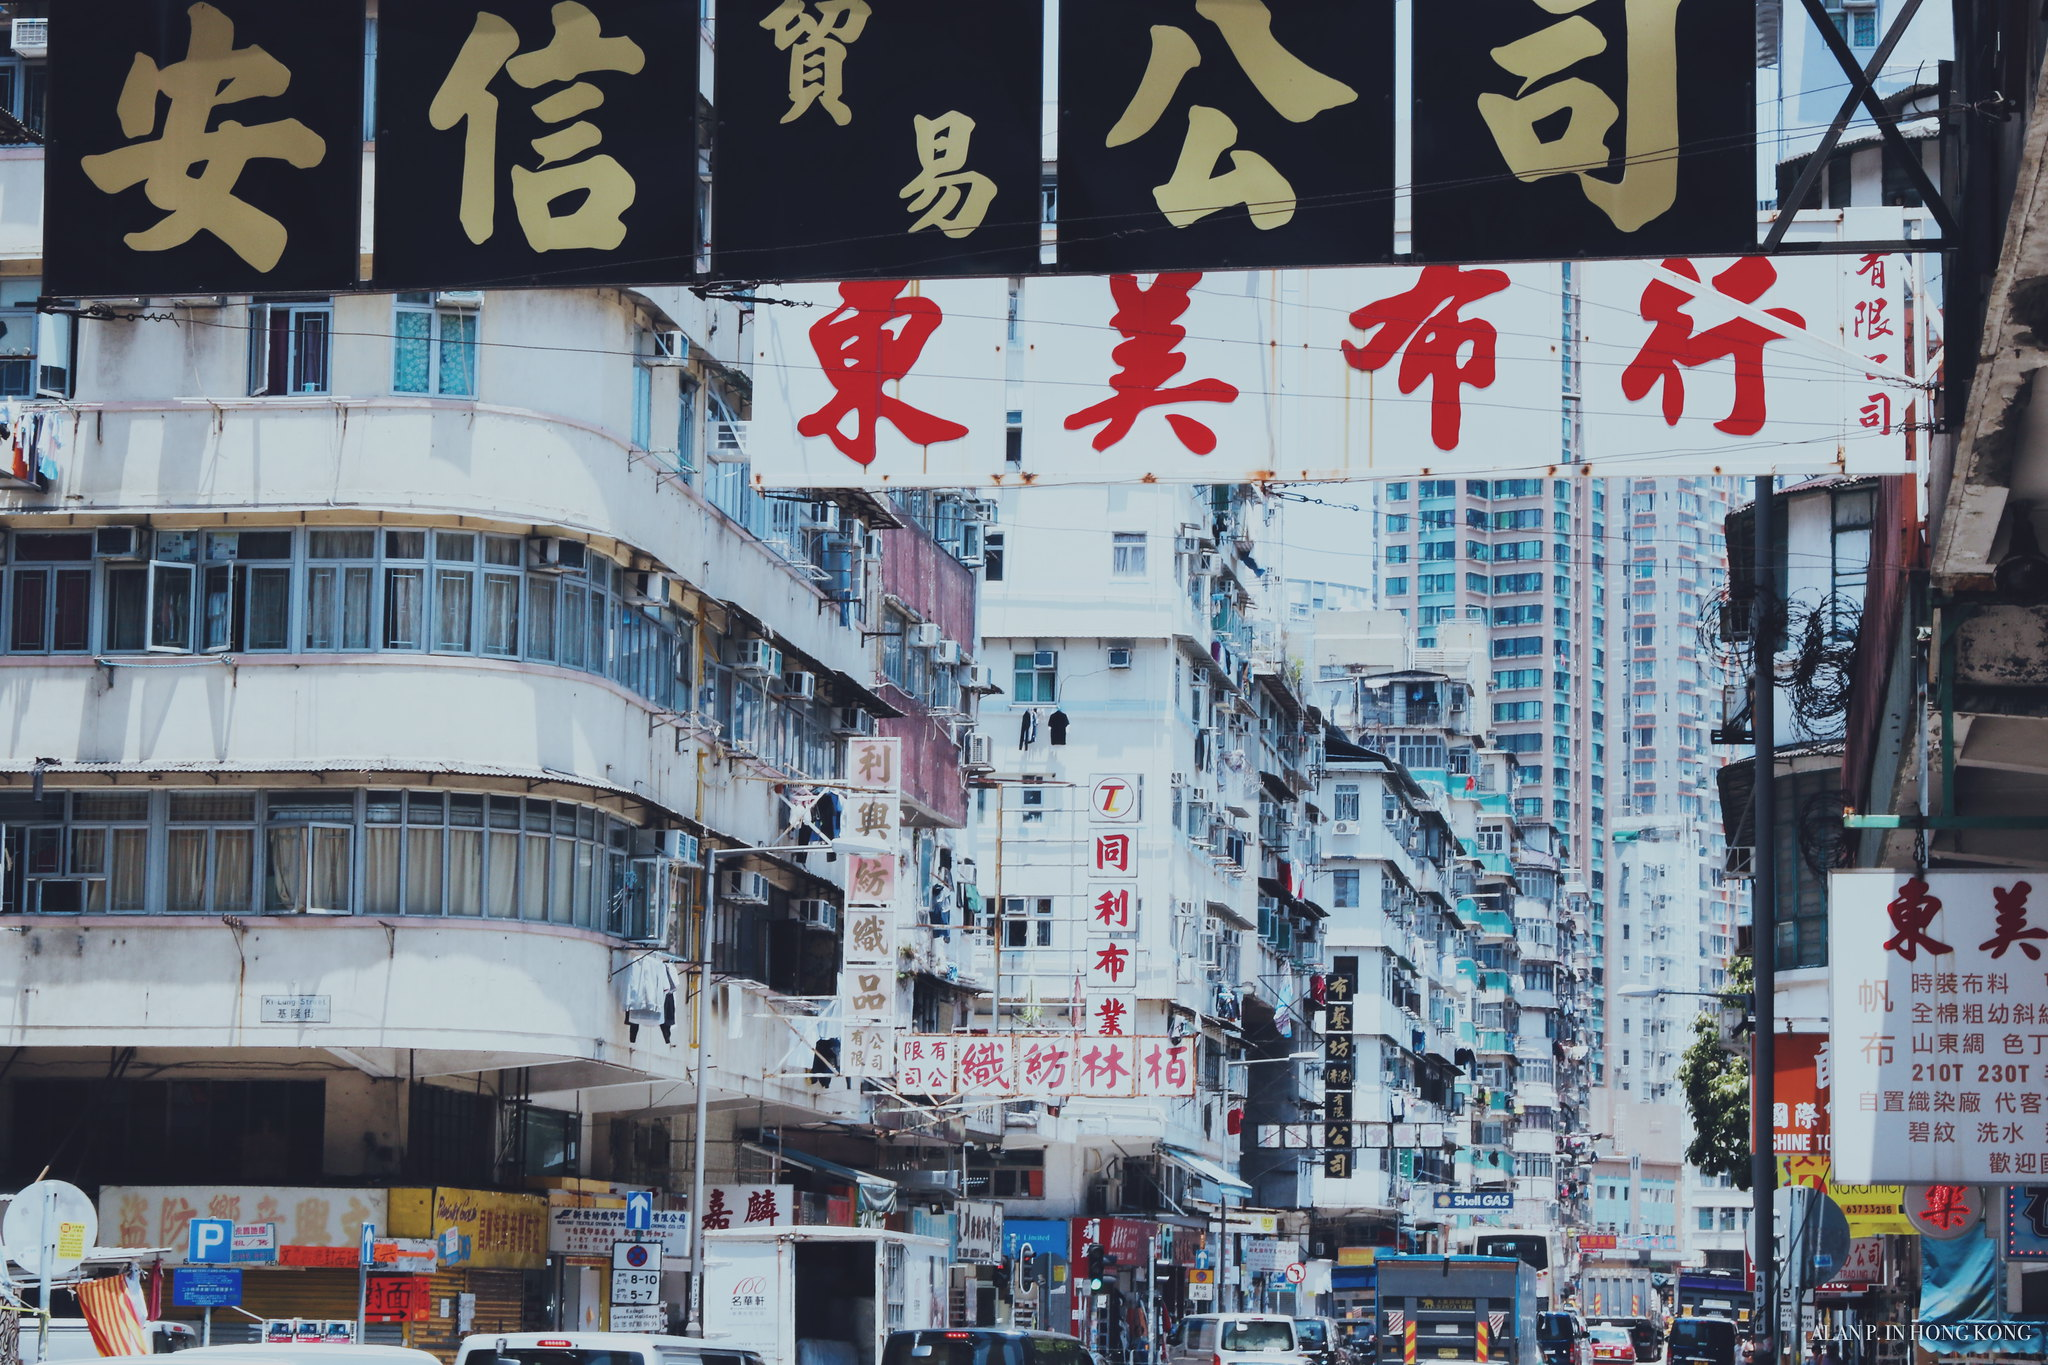 The remaining Sham Shui Po